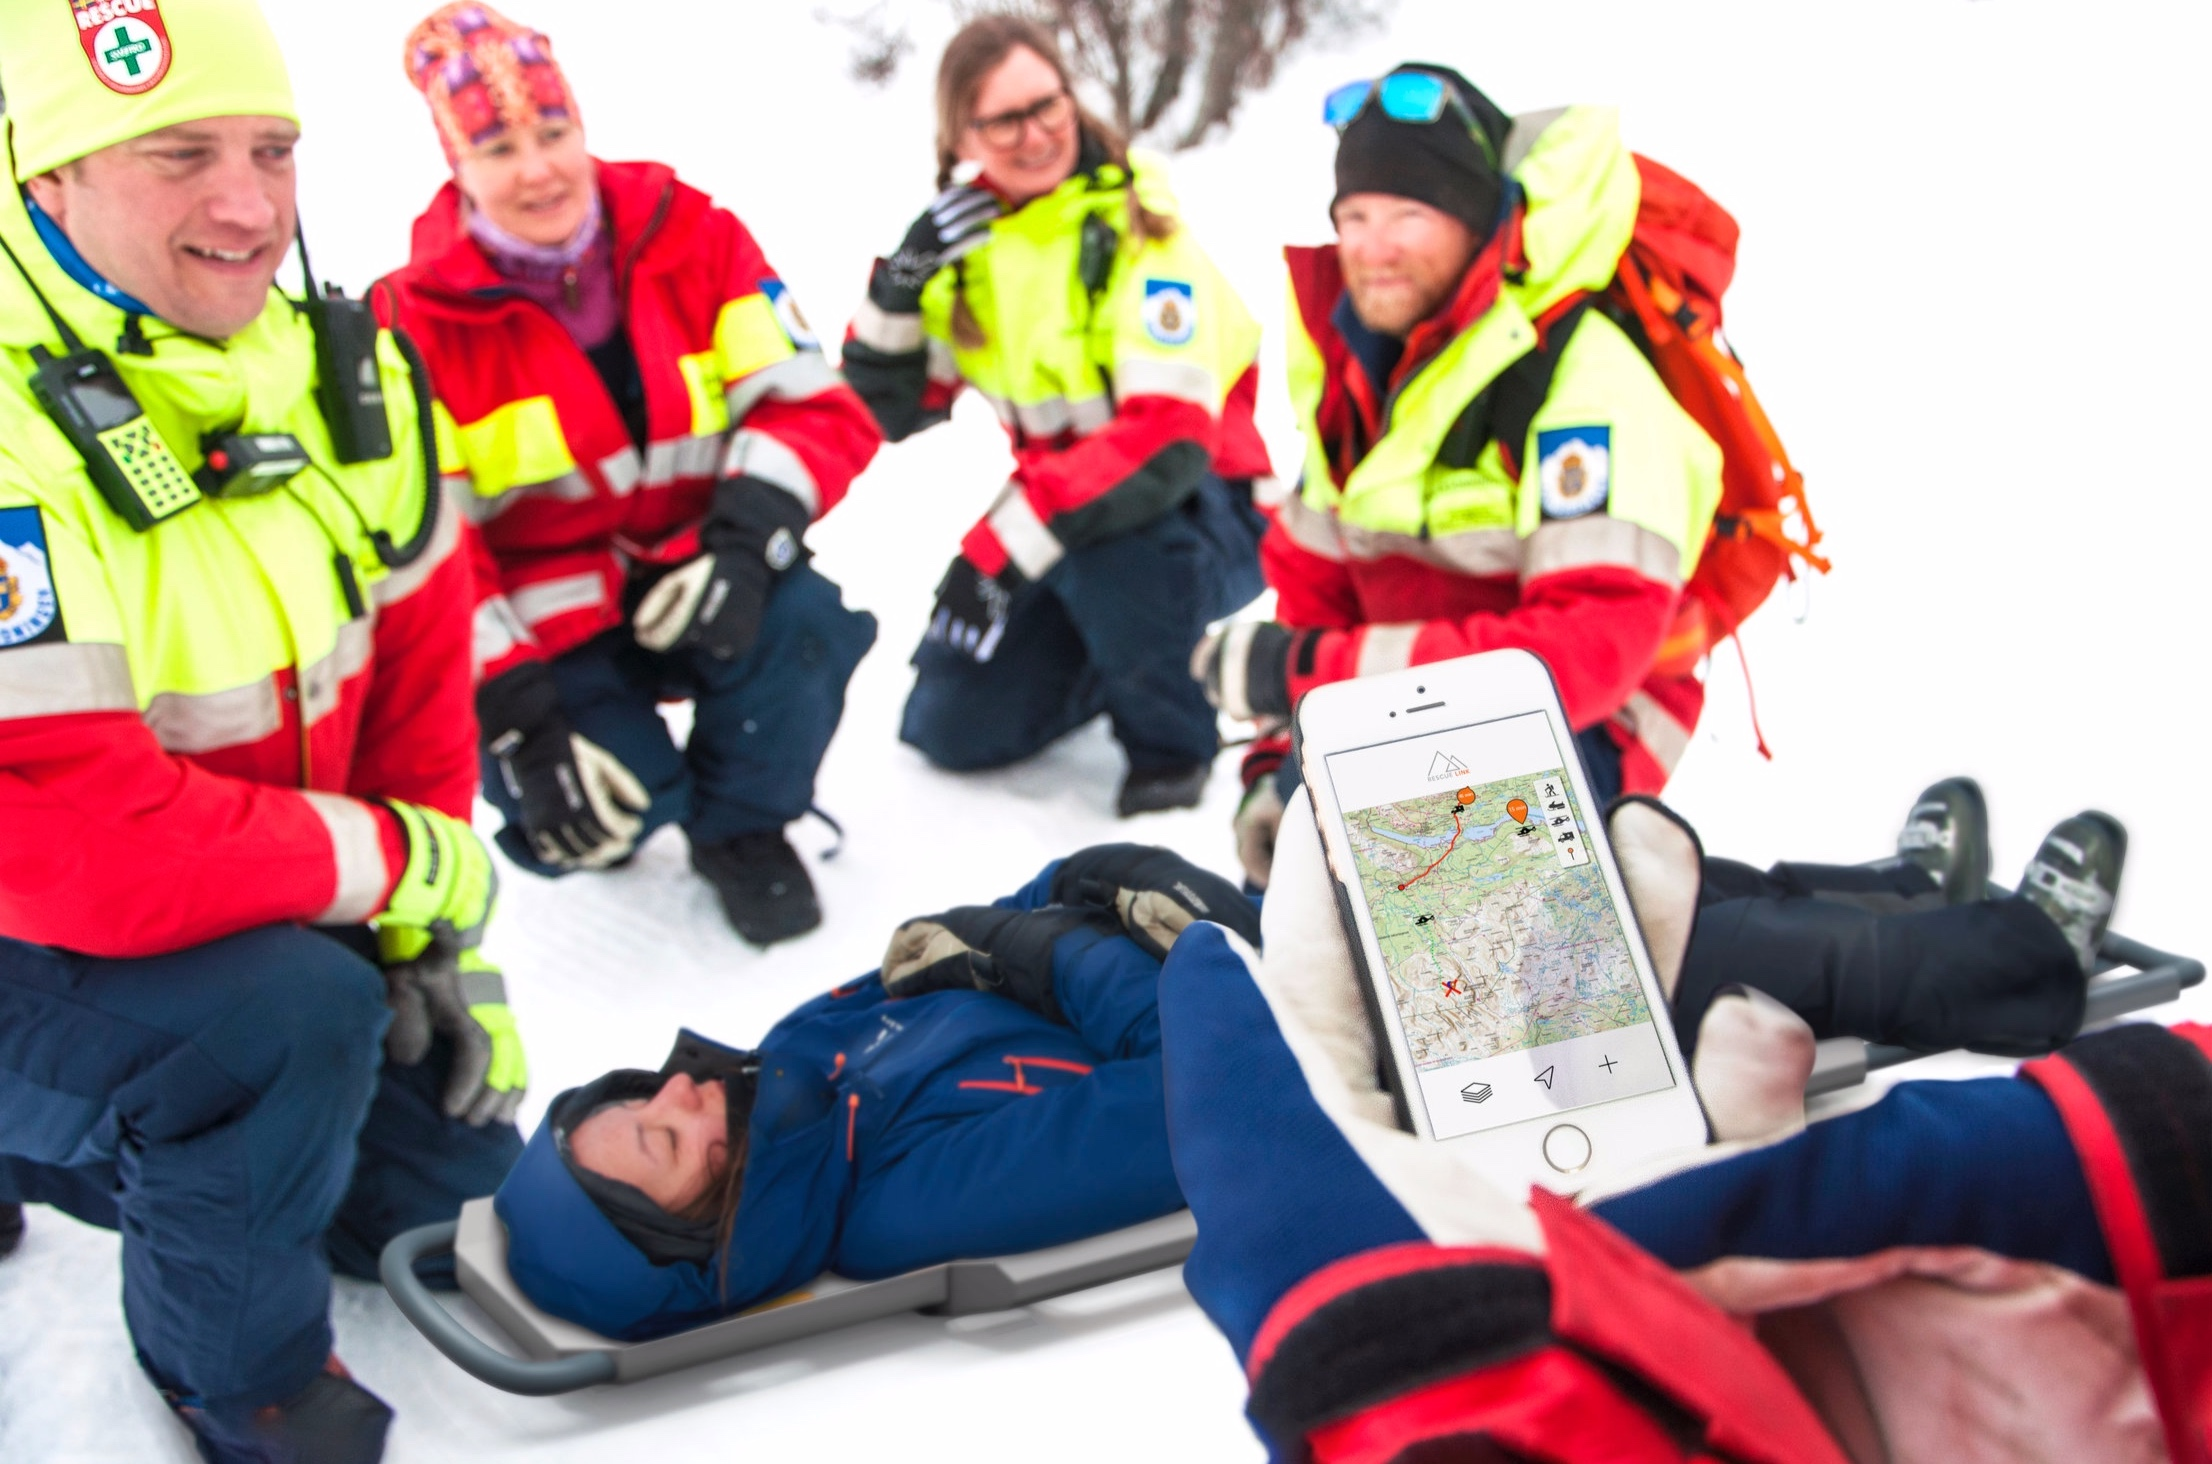 3.Rescue team - The Swedish mountain rescue team can easily plan the rescue in the application. By building the rescue chain together with ambulance and helicopter teams through exact positioning on the map and simple contact to everyone involved.